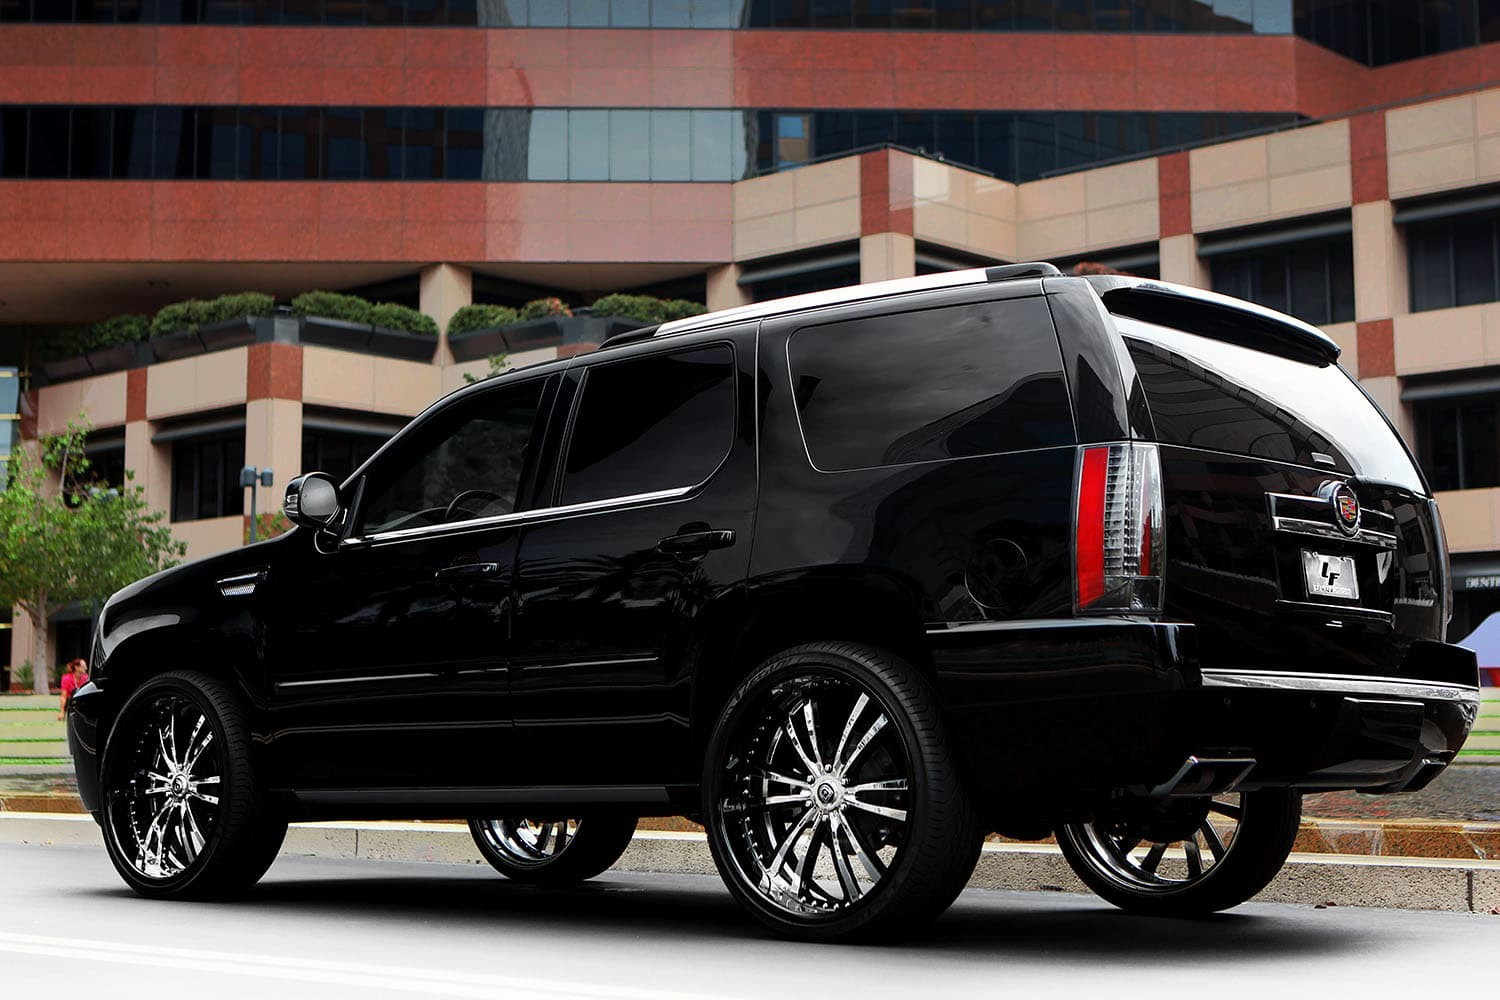 Customized Cadillac Escalade with 26